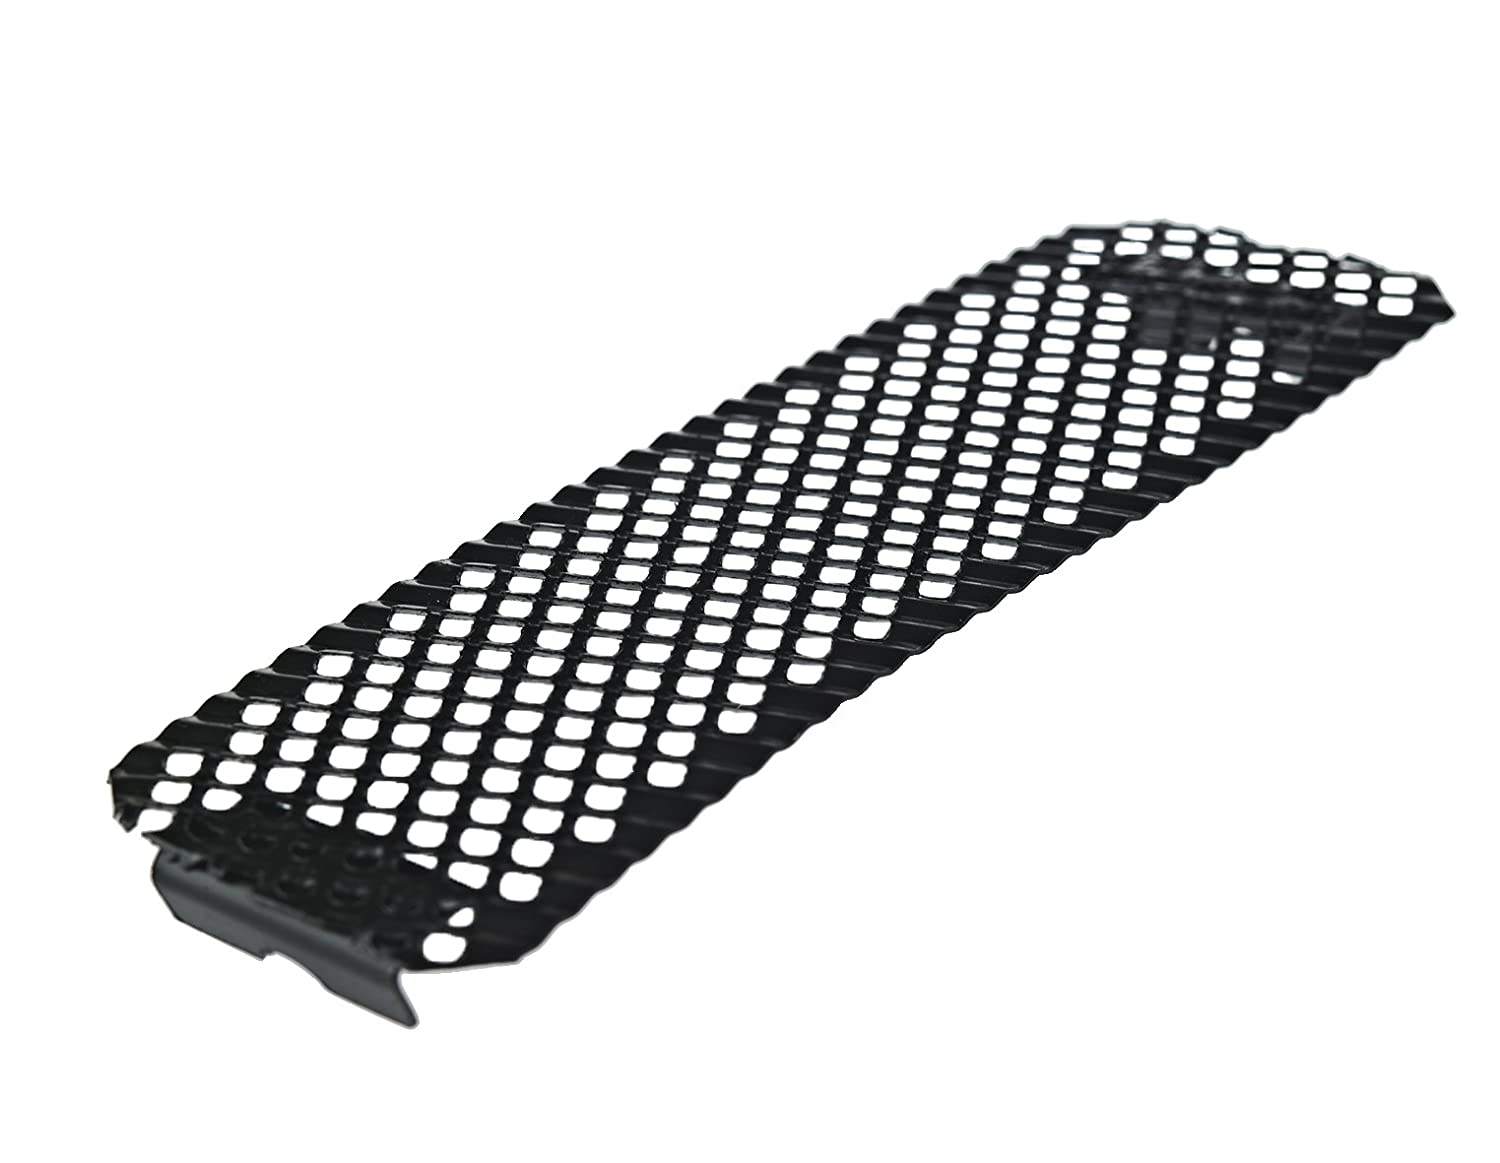 STACO 49124 Spare Blade for 49104 STACO NORDIC